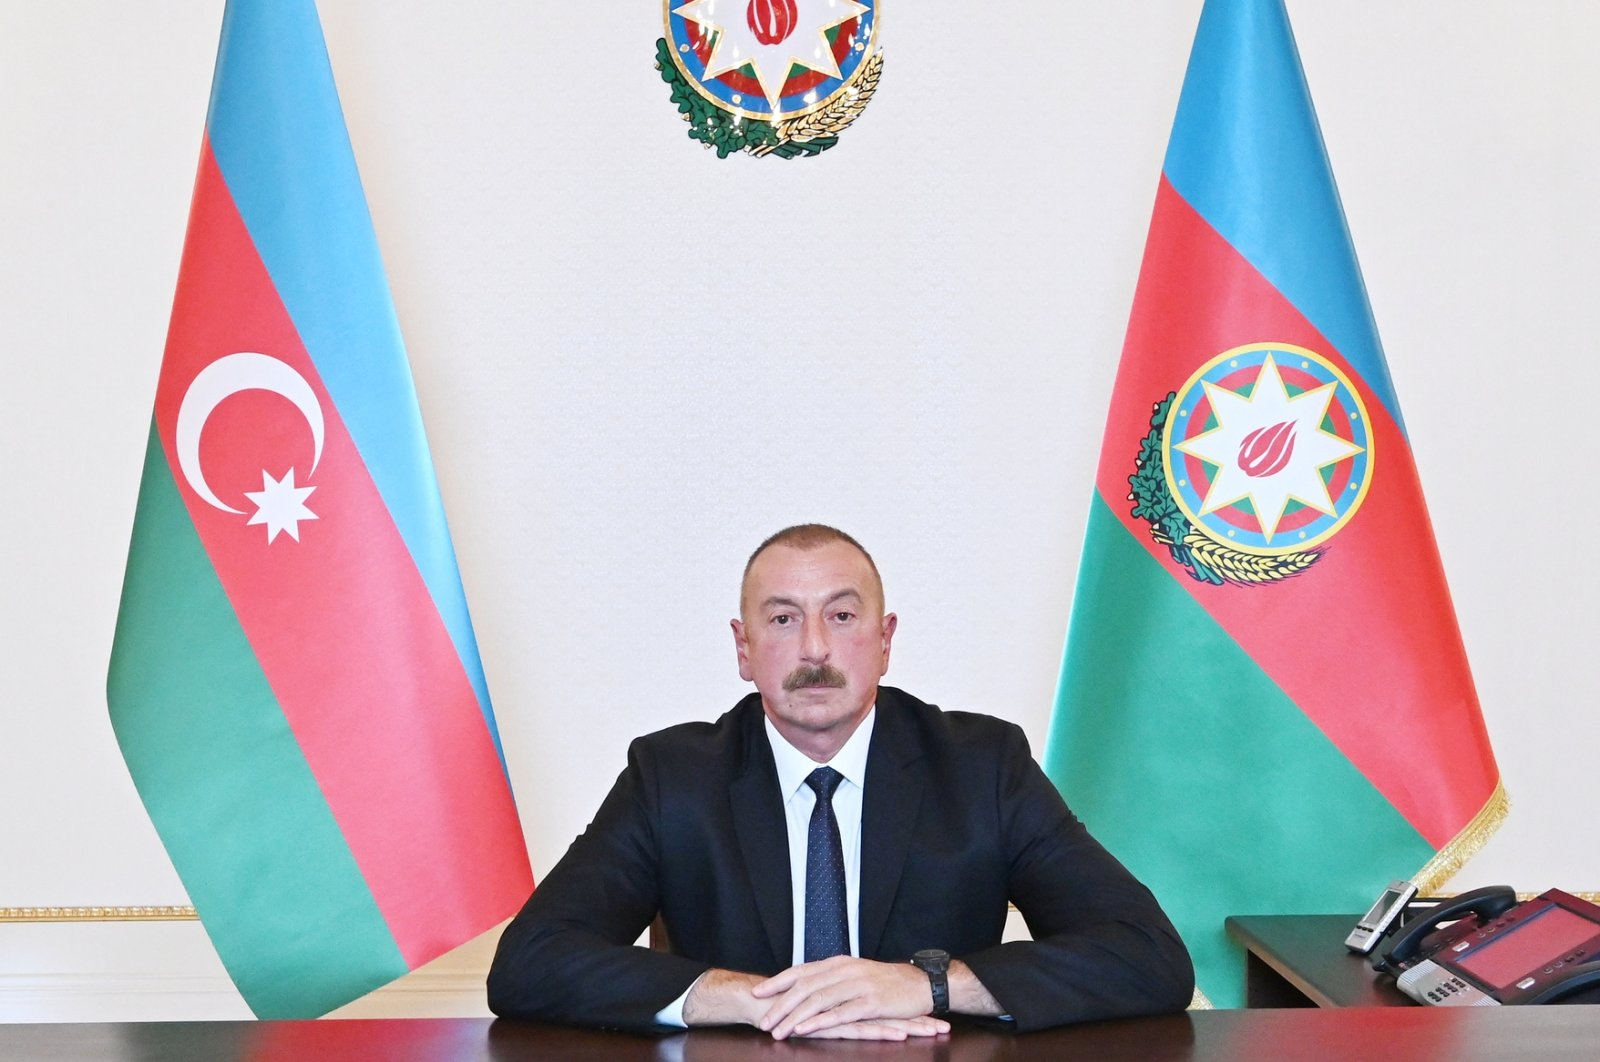 Azerbaijan's President Ilham Aliyev is pictured during an address to the nation in Baku, Azerbaijan, Oct. 4, 2020. (Reuters Photo)